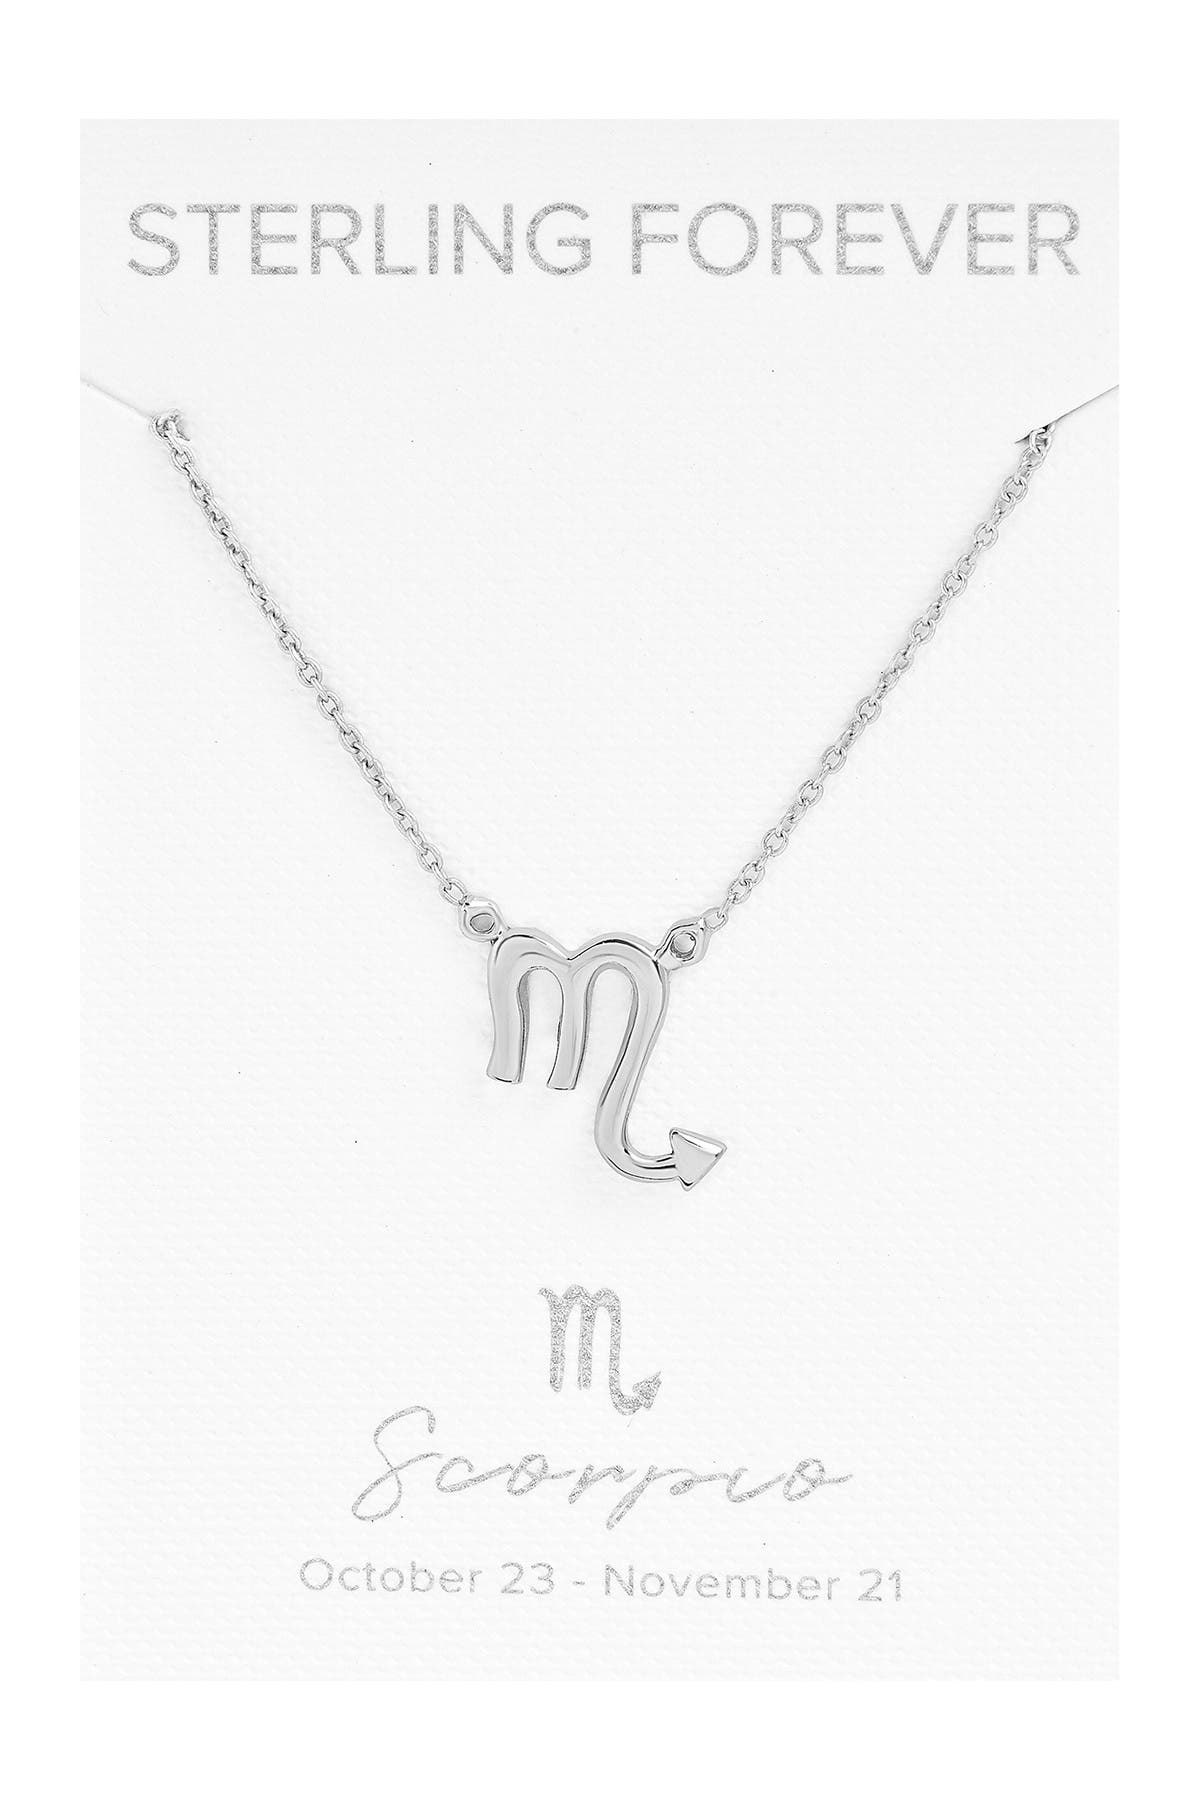 Image of Sterling Forever Rhodium Plated Zodiac Pendant Necklace - Scorpio